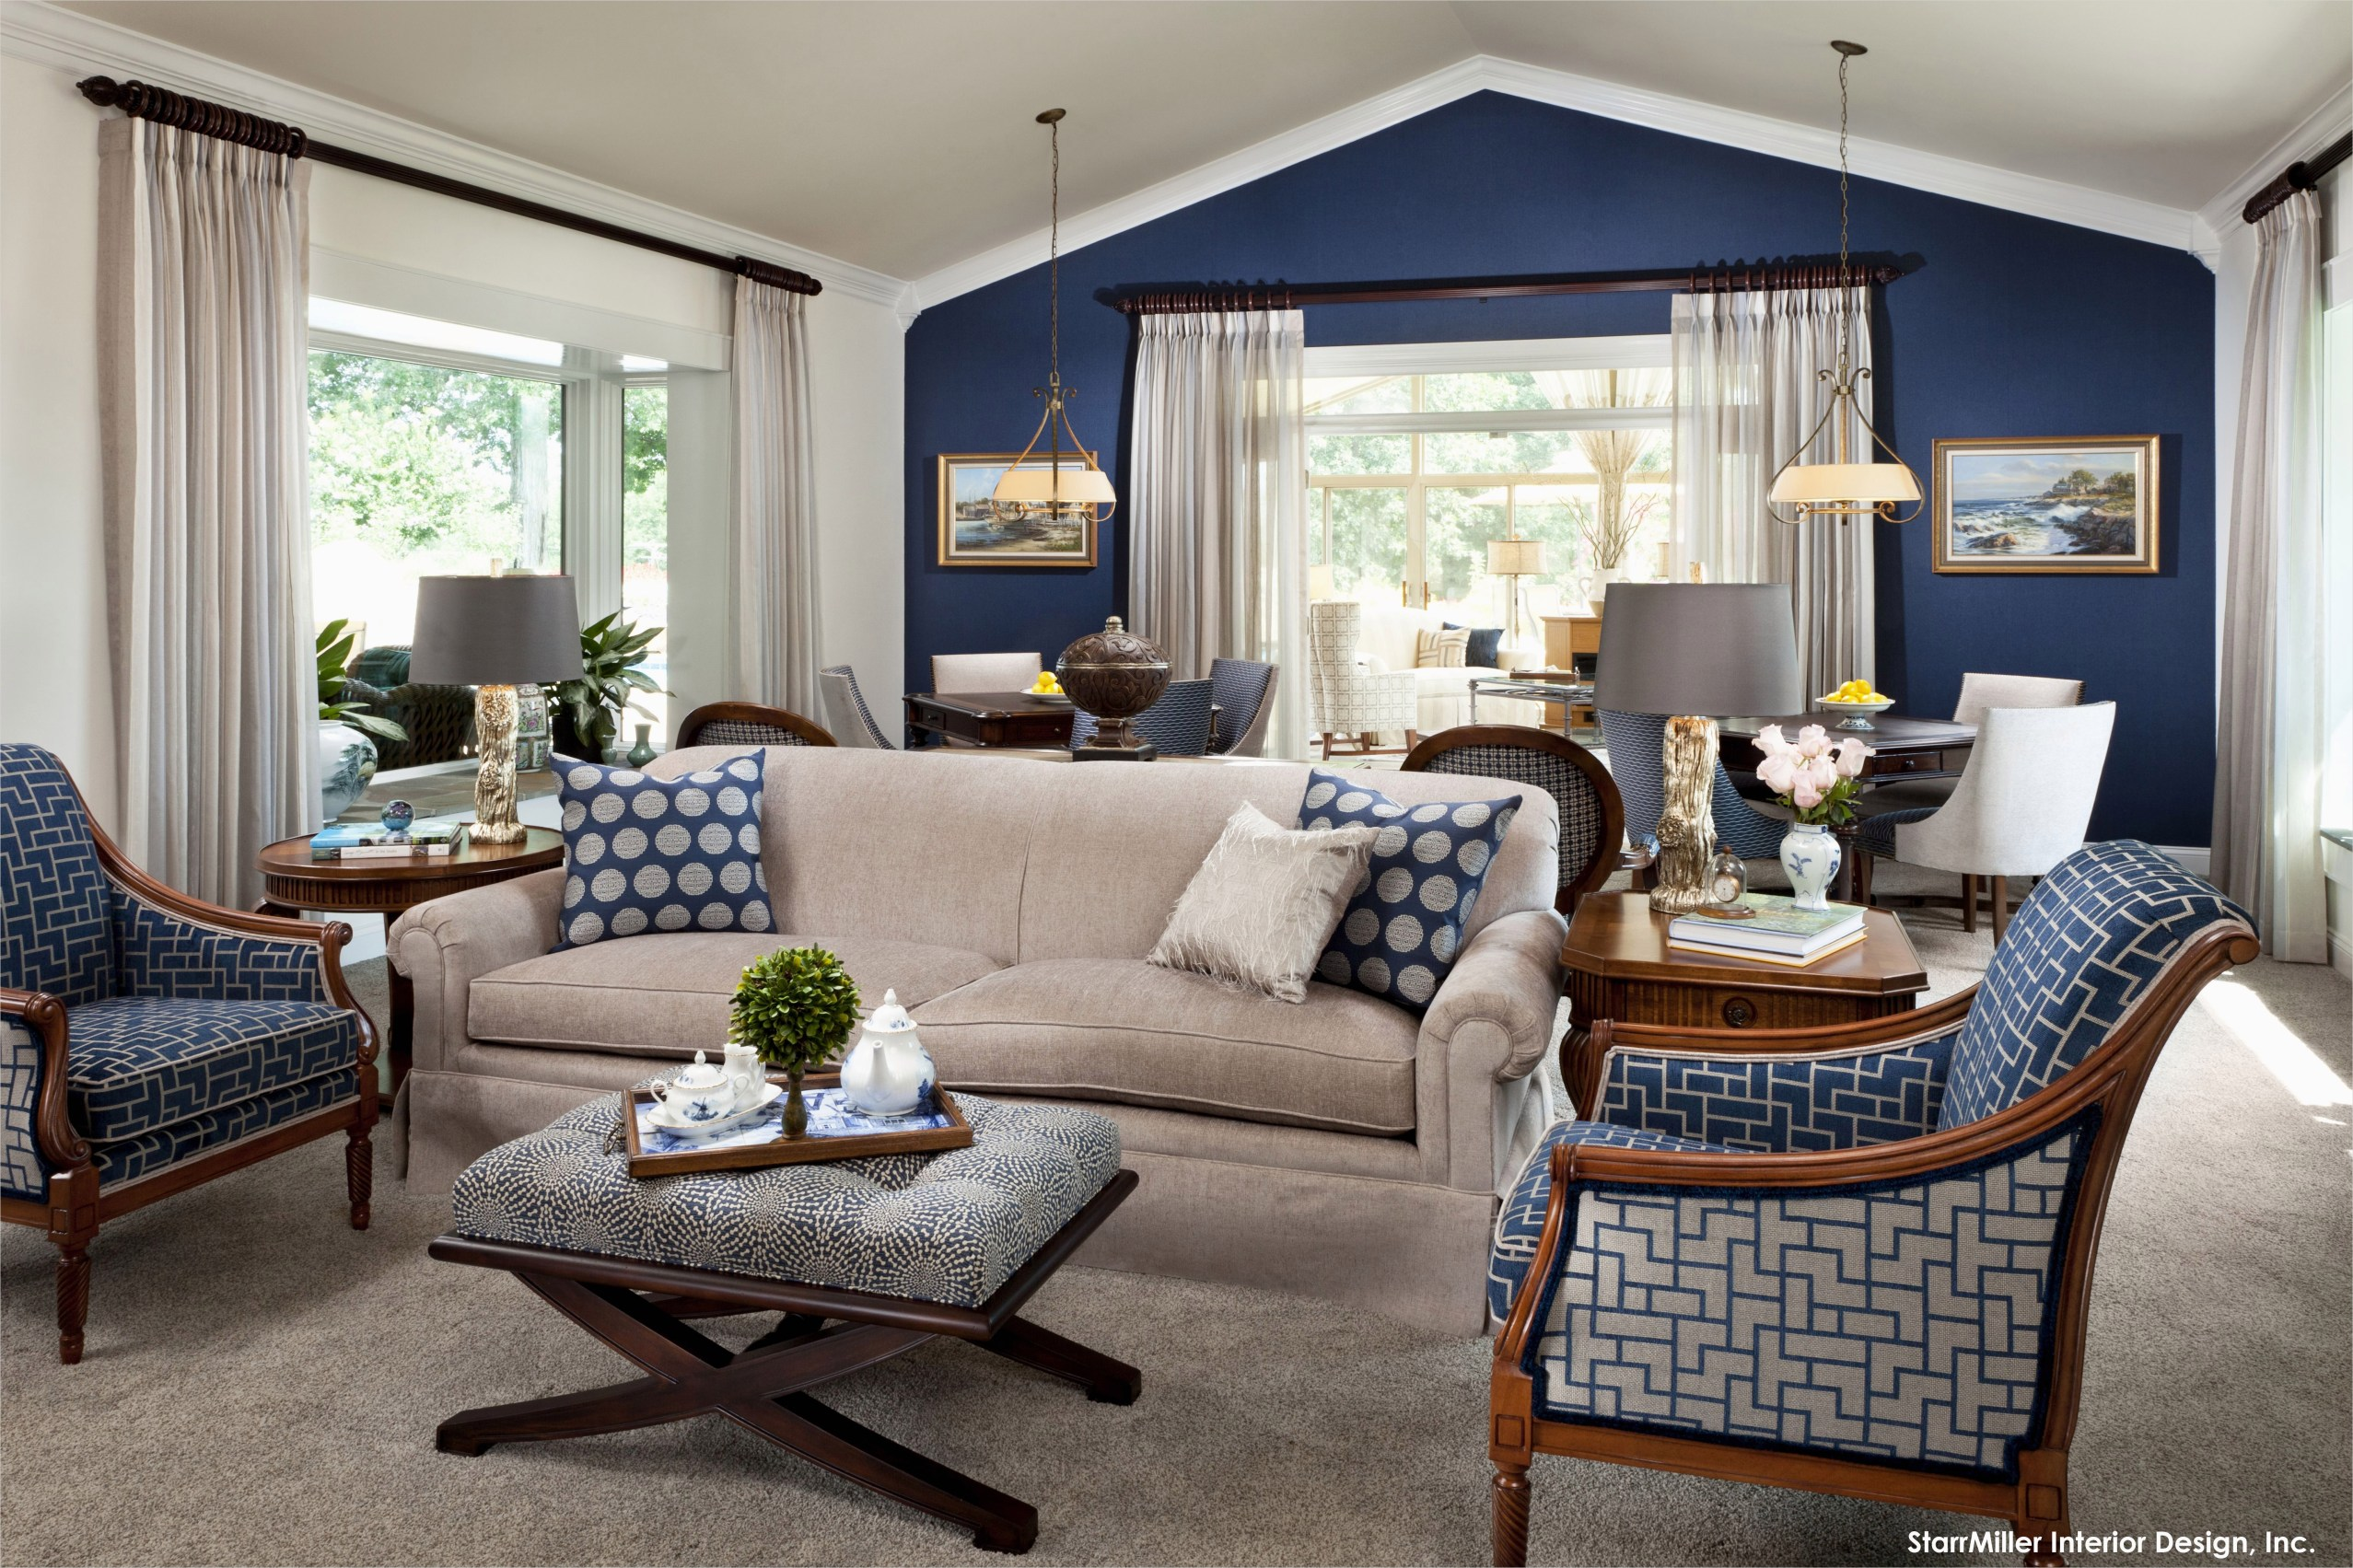 41 Amazing Navy Blue and White Living Room 19 Livingroom Grey and Navy Blue Living Room Ideas Limited Space organizing Accent Wall Decor 9